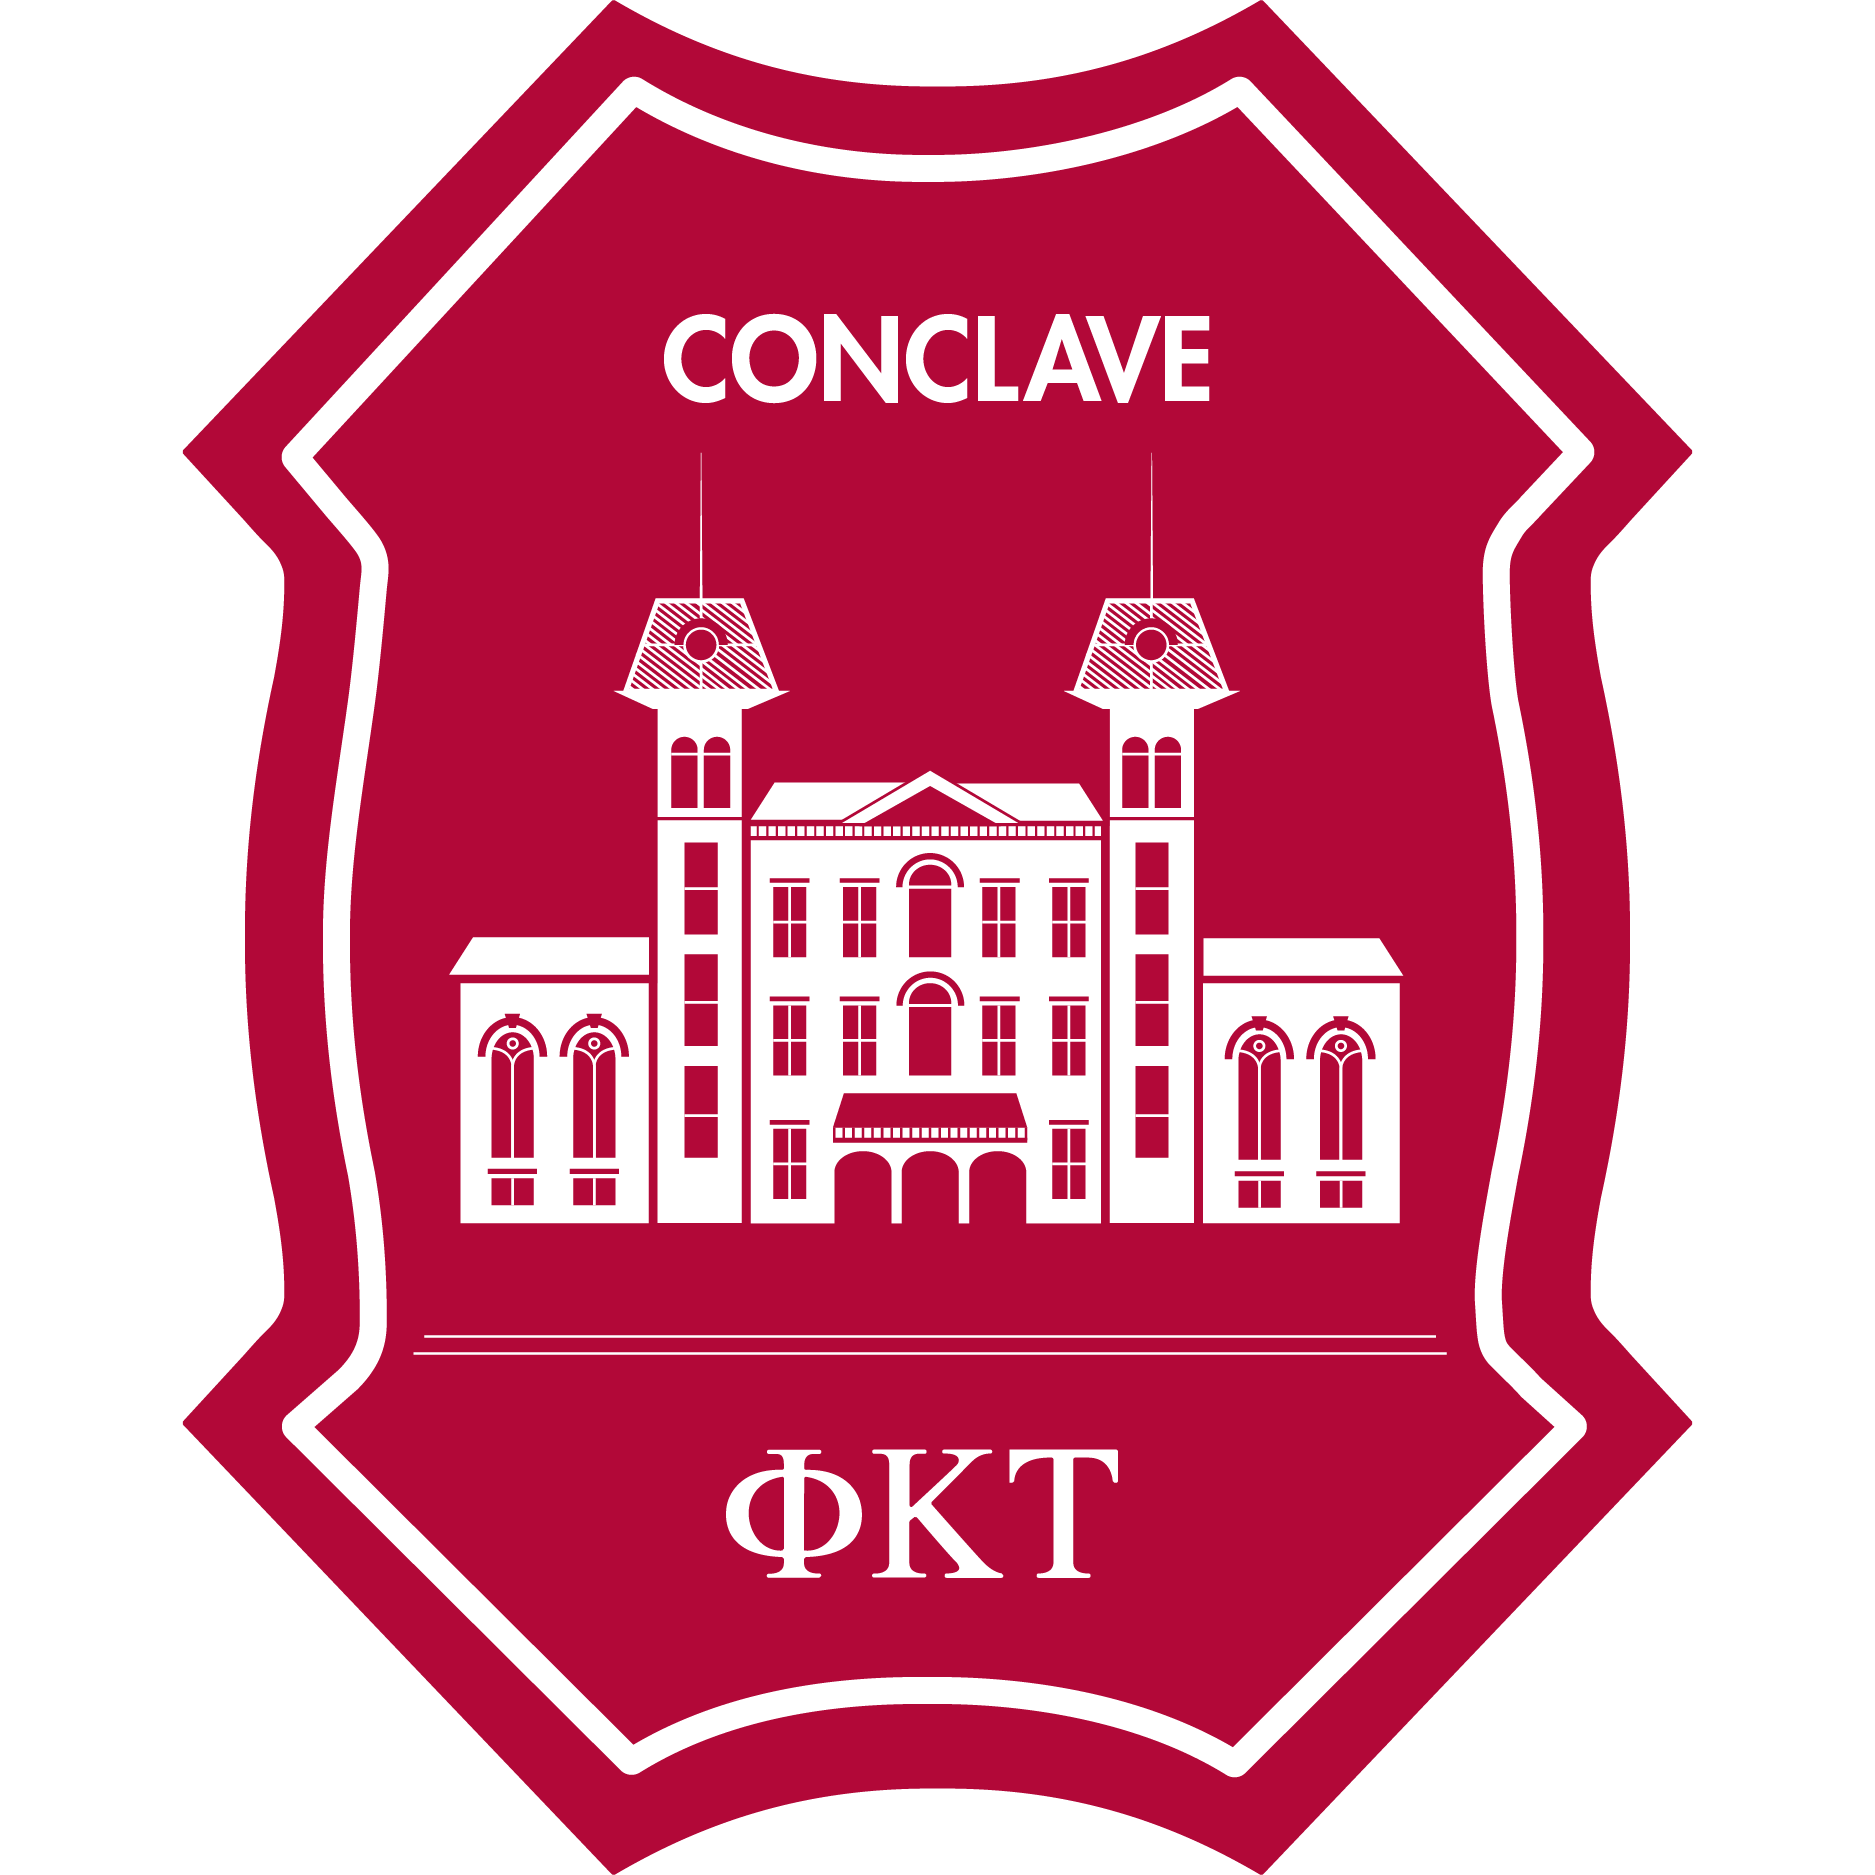 Phi Kappa Tau Conclave Logo. Link to Conclave Page